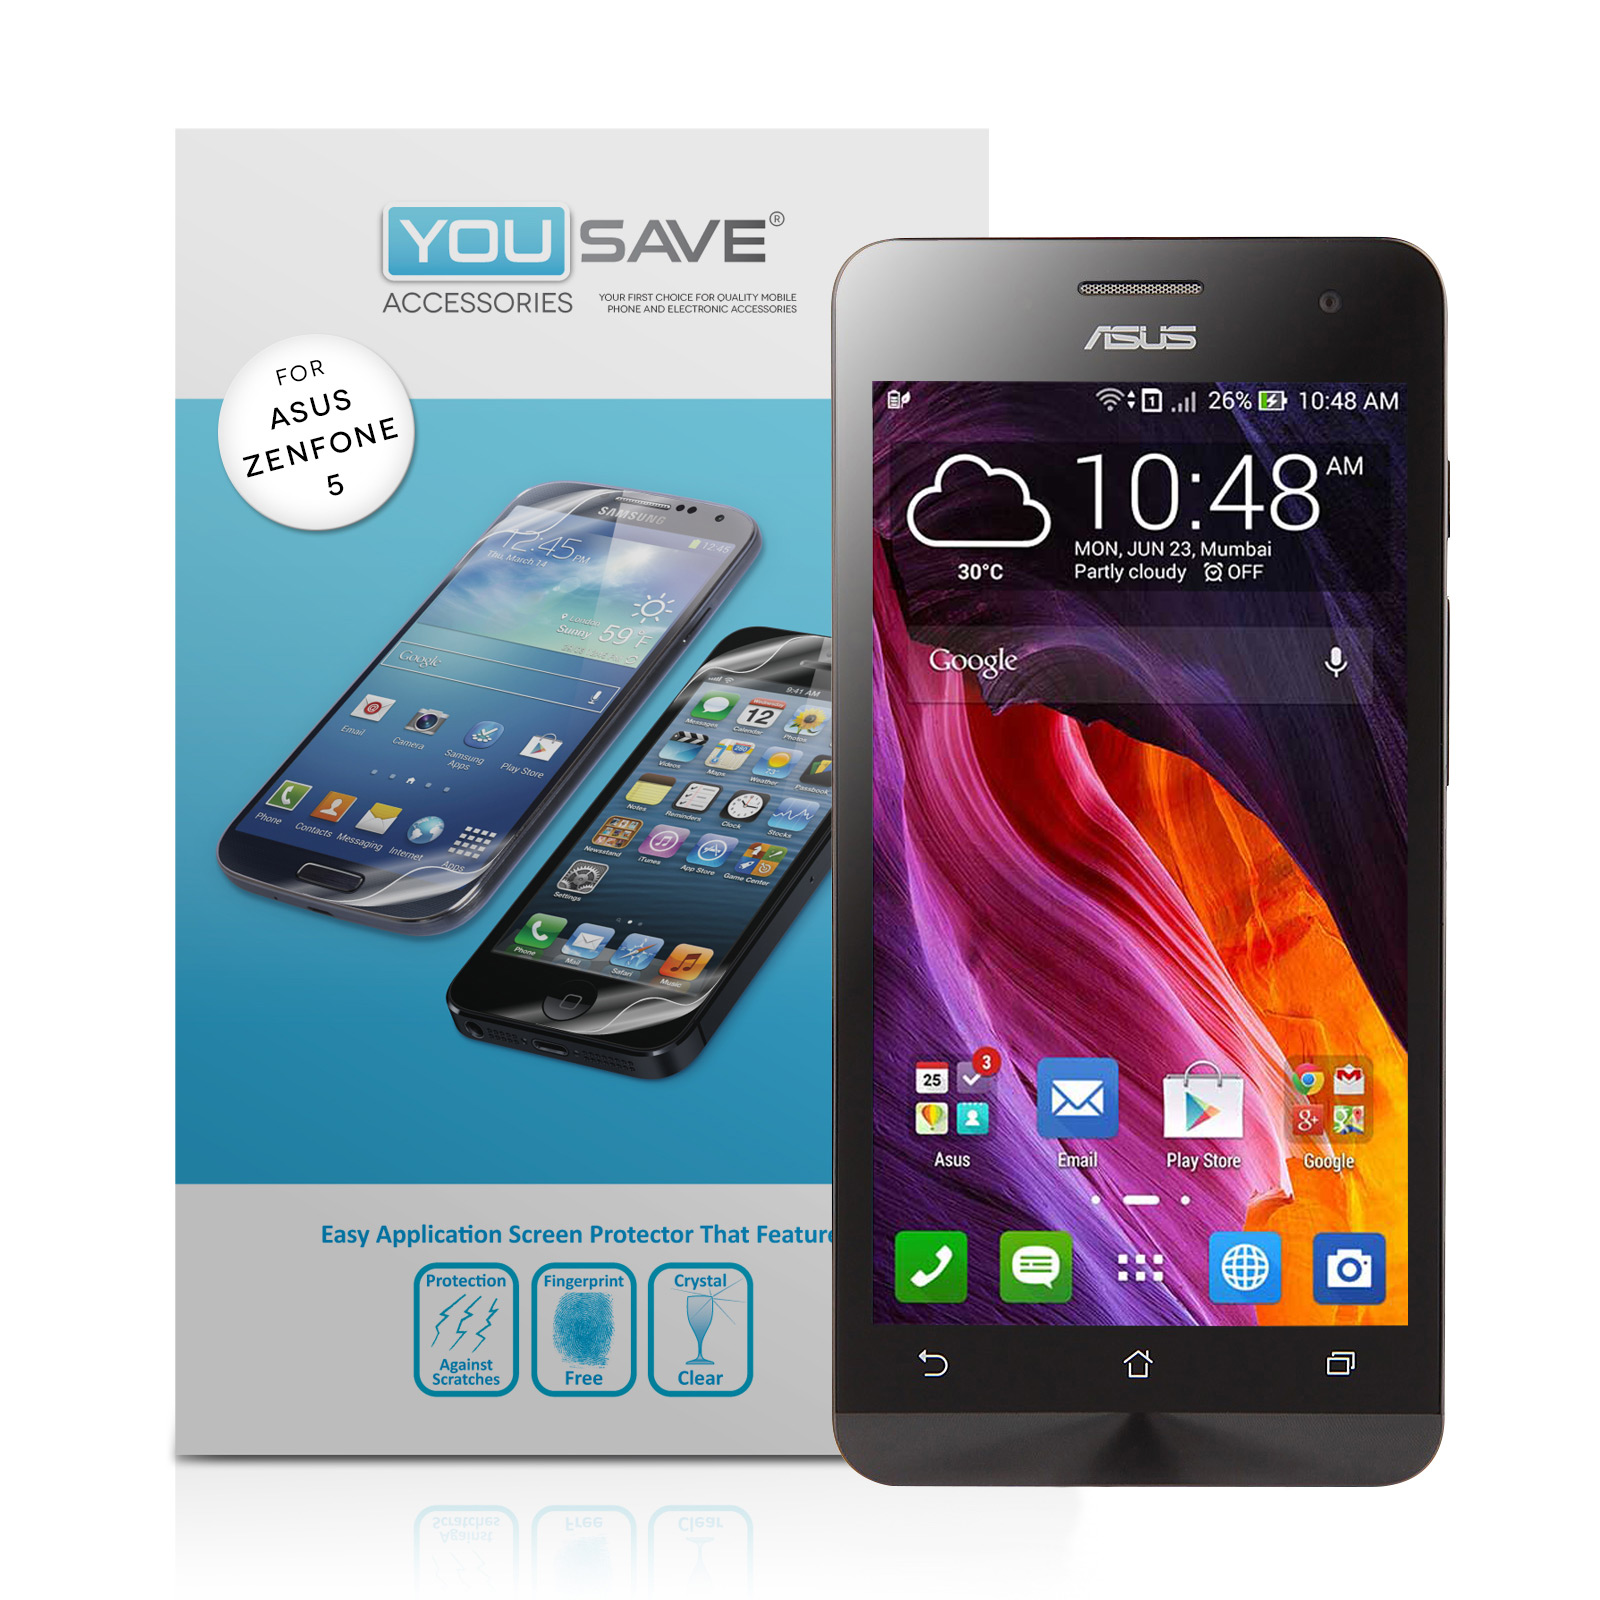 YouSave Accessories ASUS Zenfone 5 Screen Protectors x3